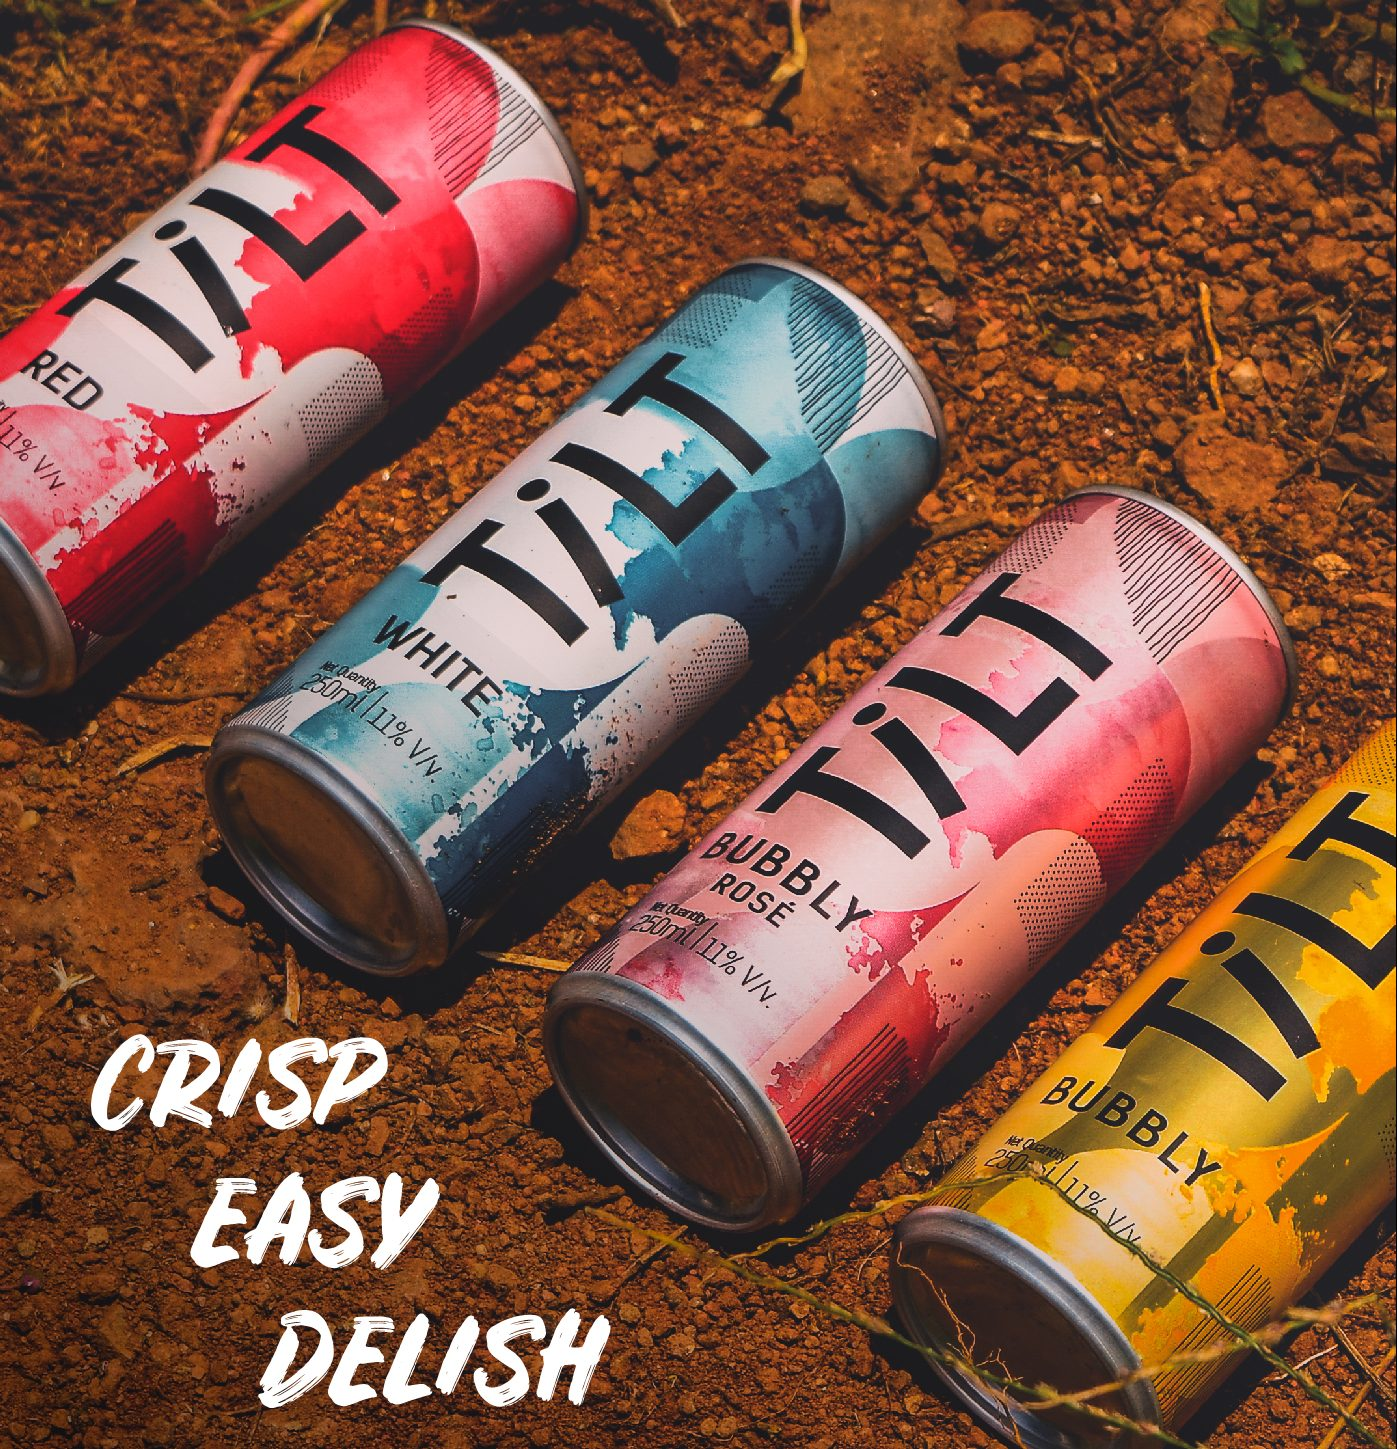 TiLT Wine in a Can